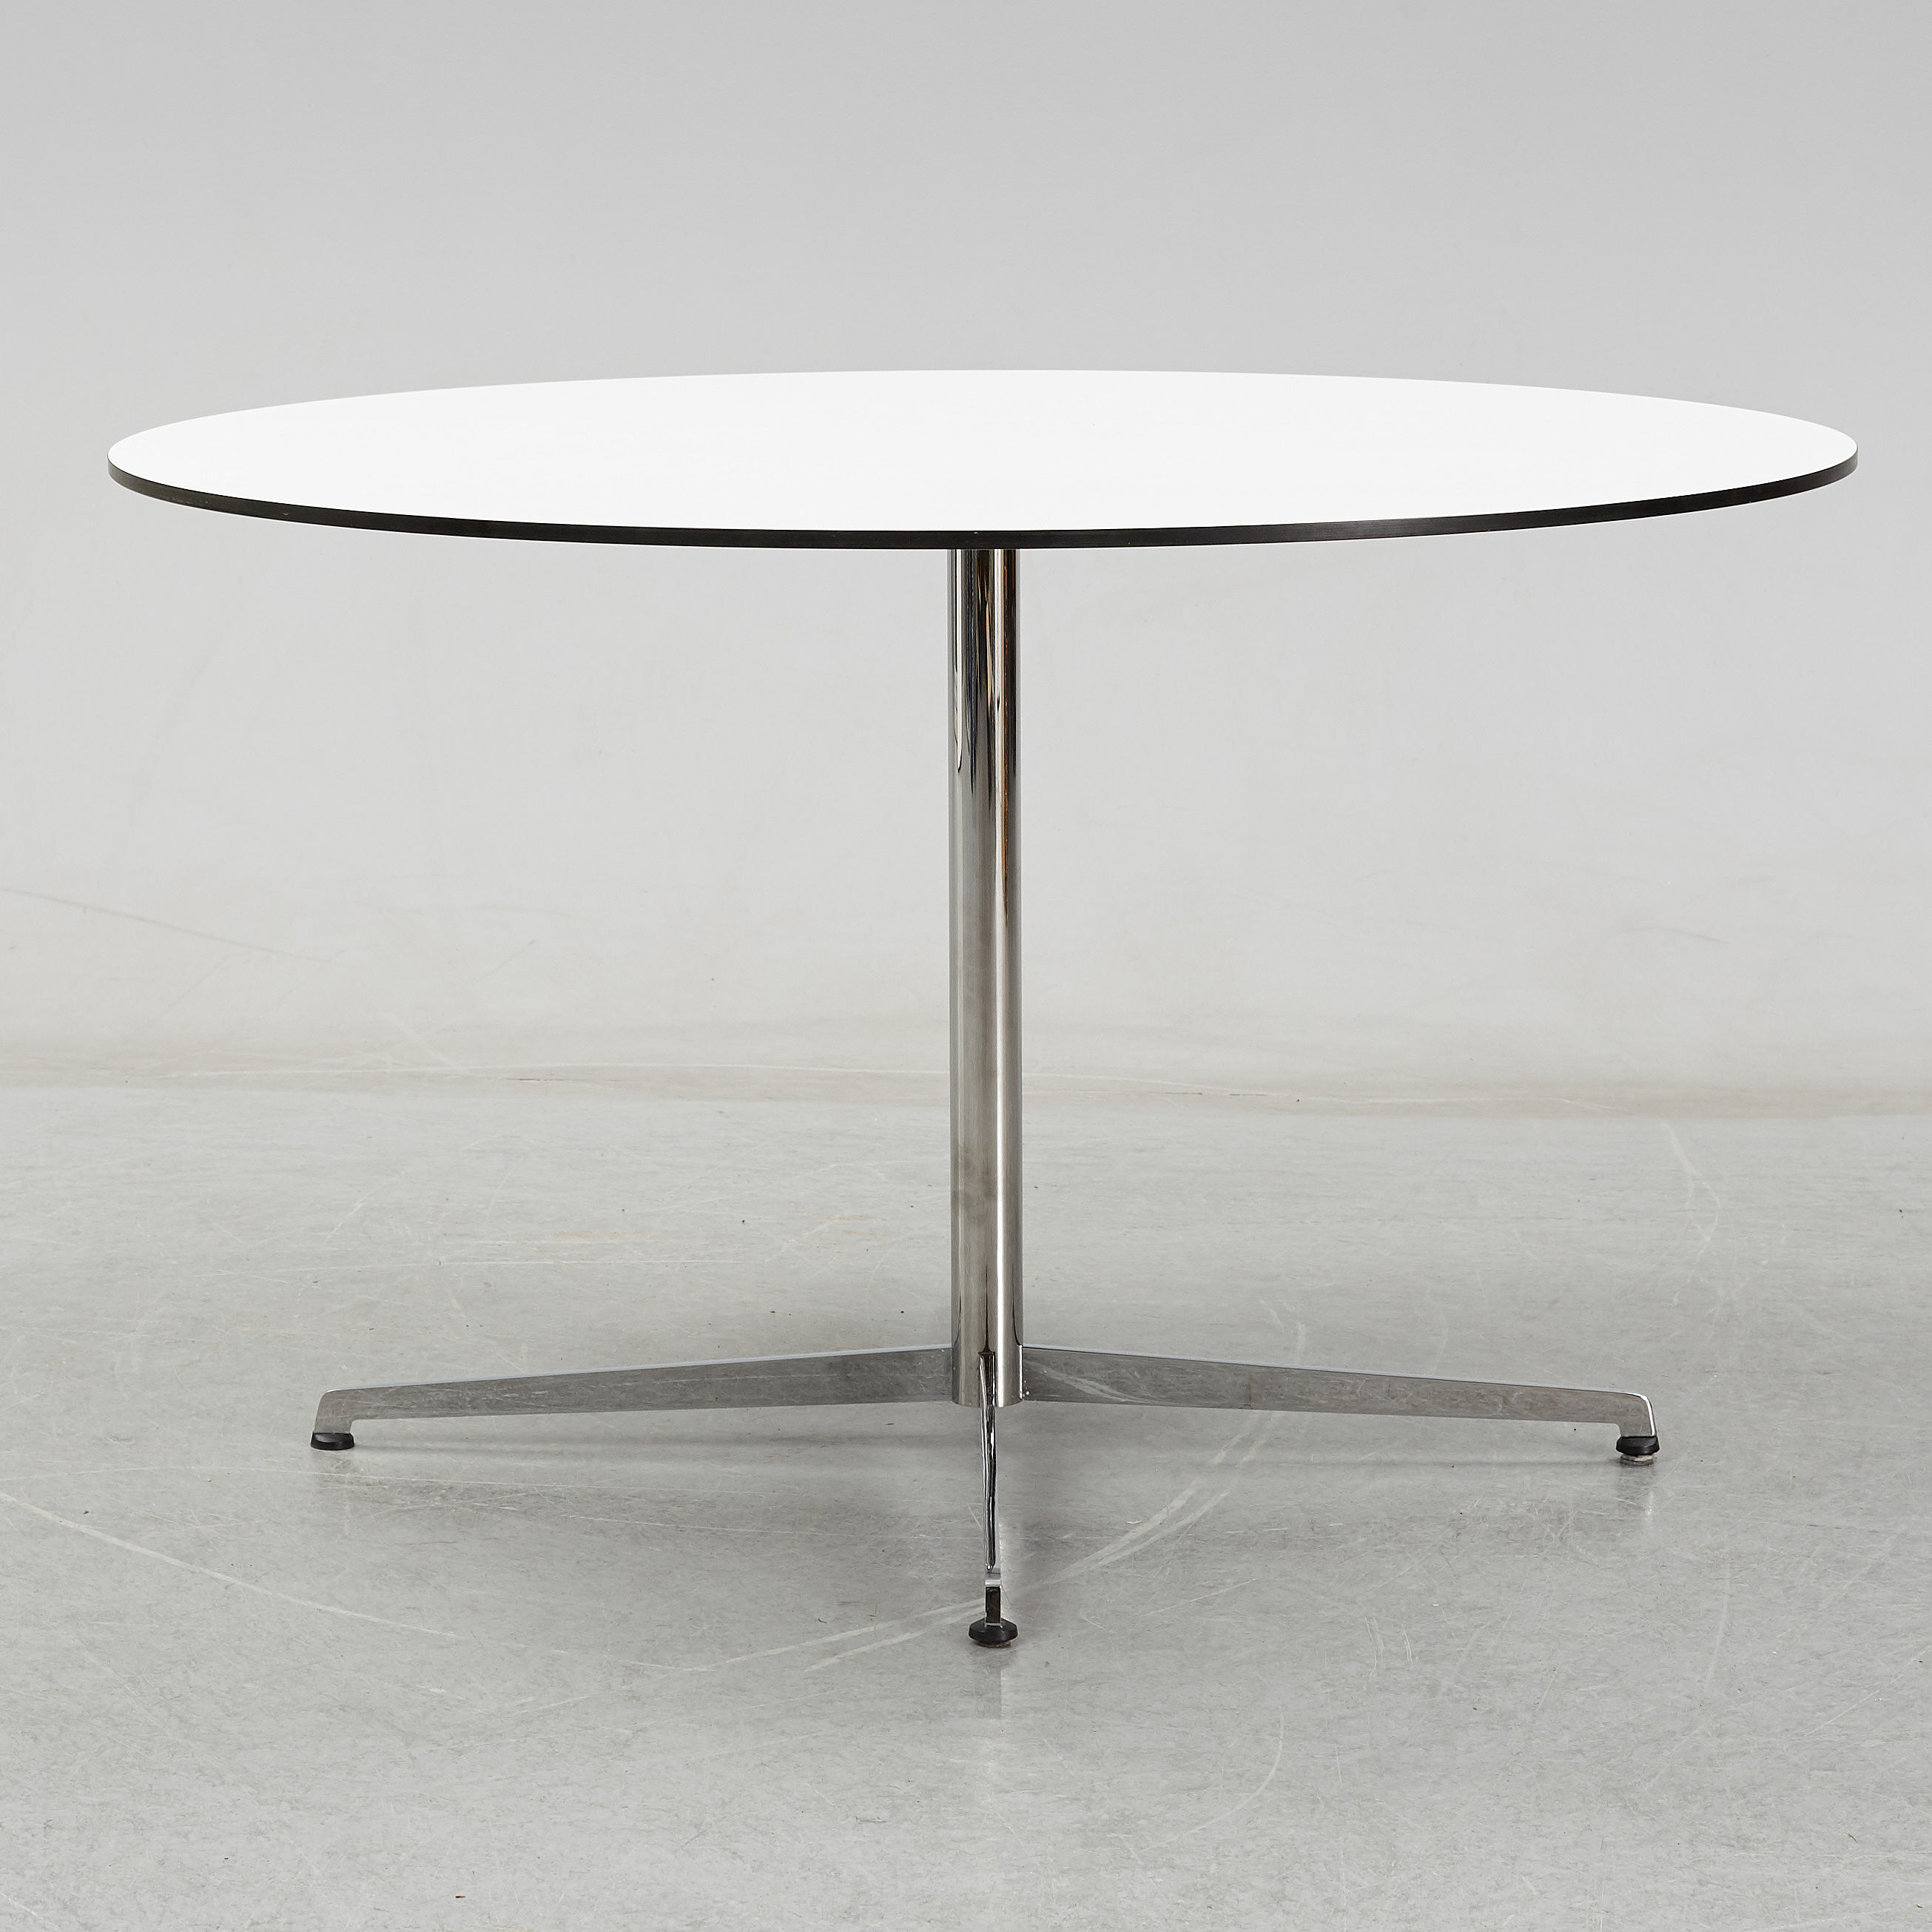 A Cooper Dining Table By Gunilla Allard For Lammhults Bukowskis